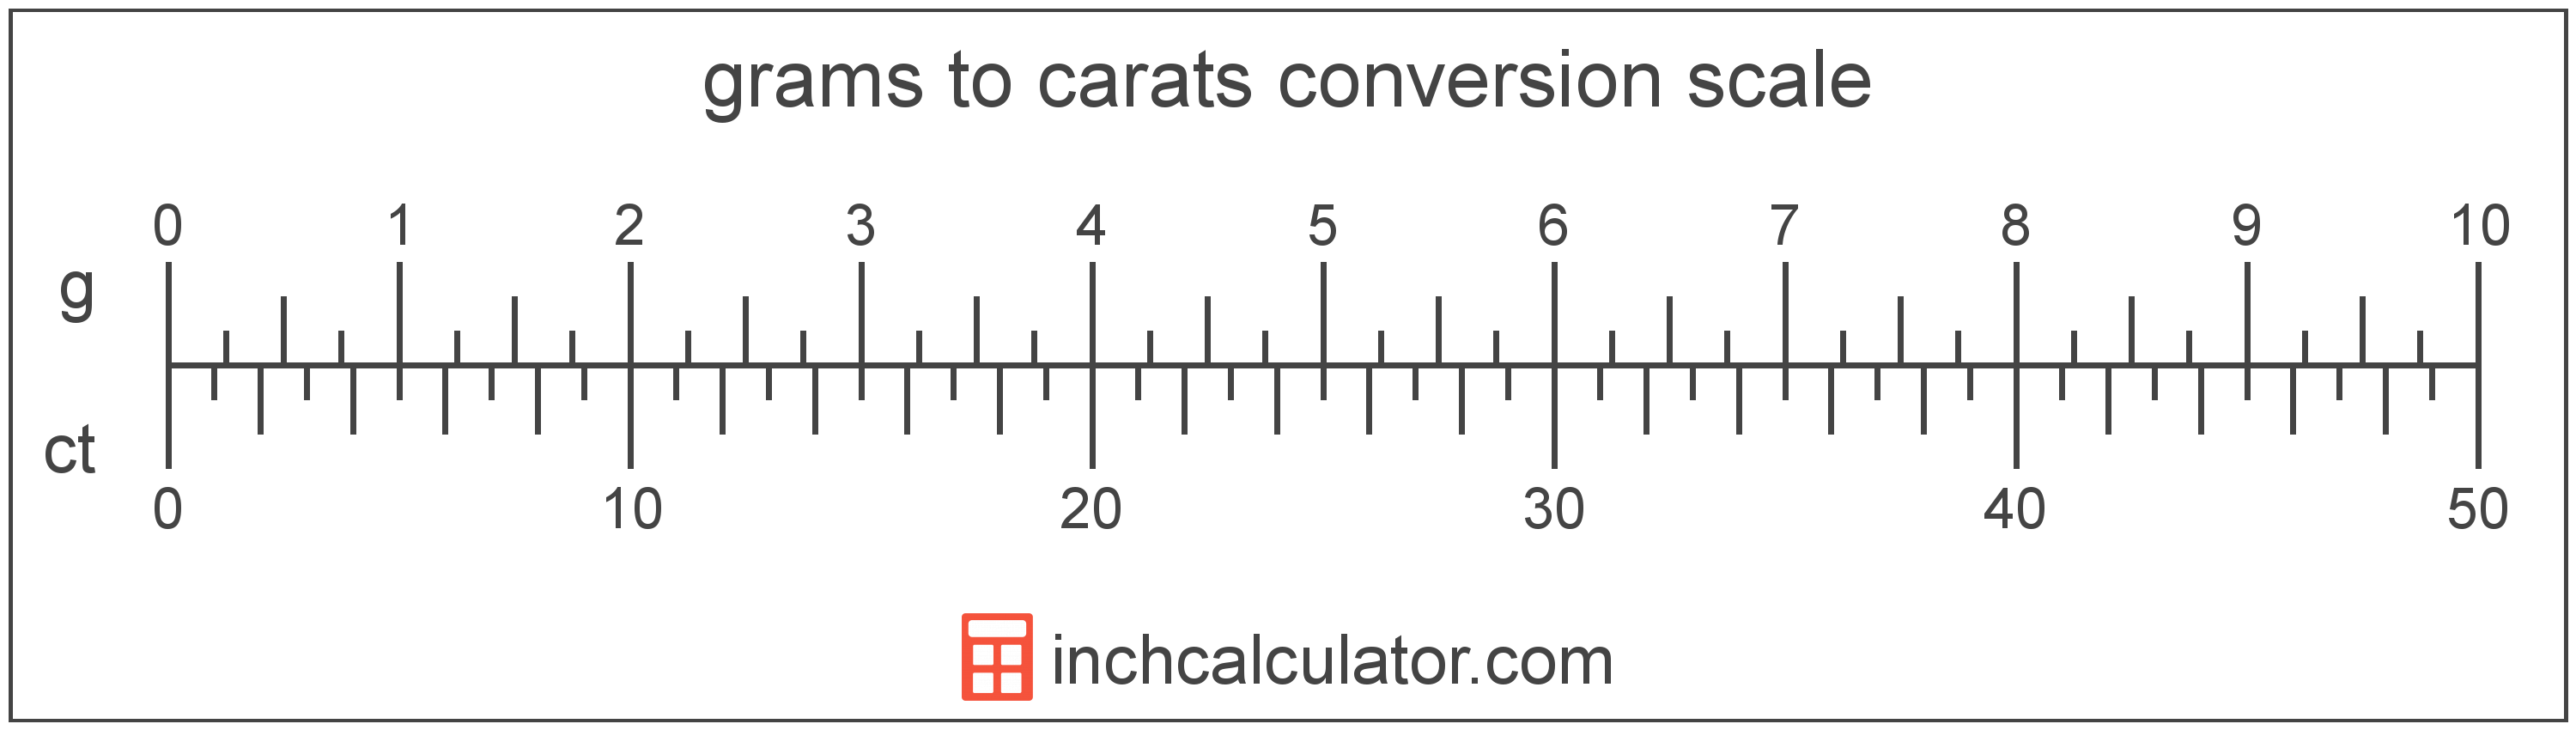 Convert Grams To Carats G Ct Inch Calculator